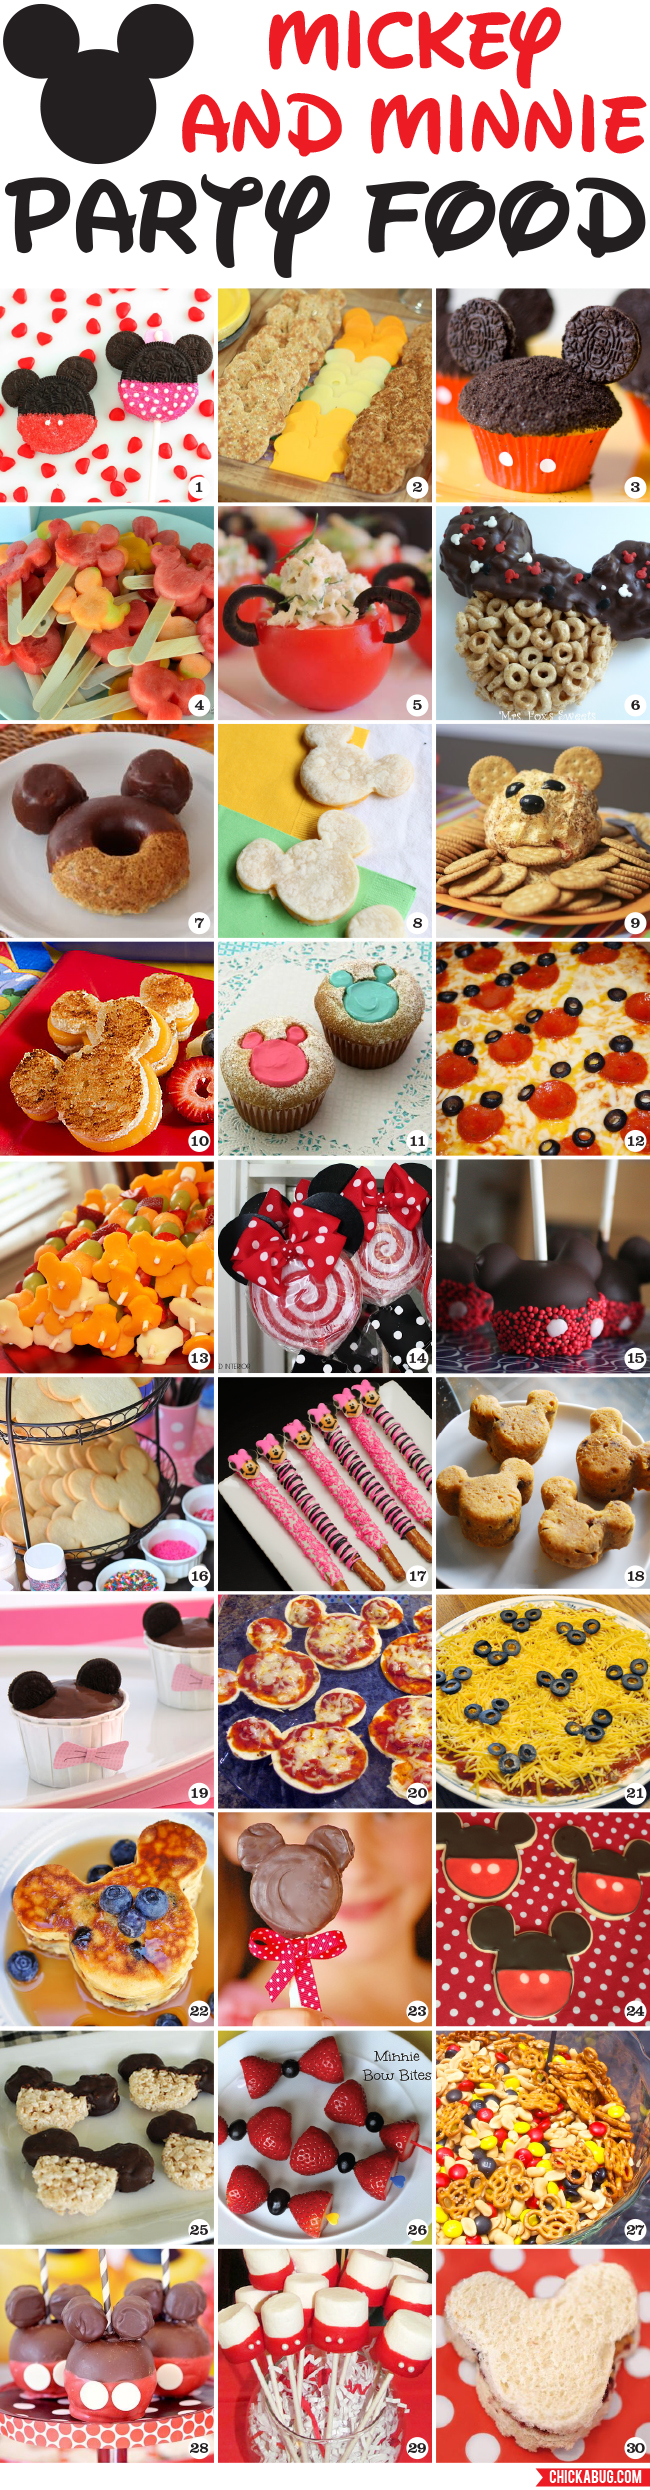 30 Awesome Mickey Mouse And Minnie Mouse Party Food Ideas Chickabug